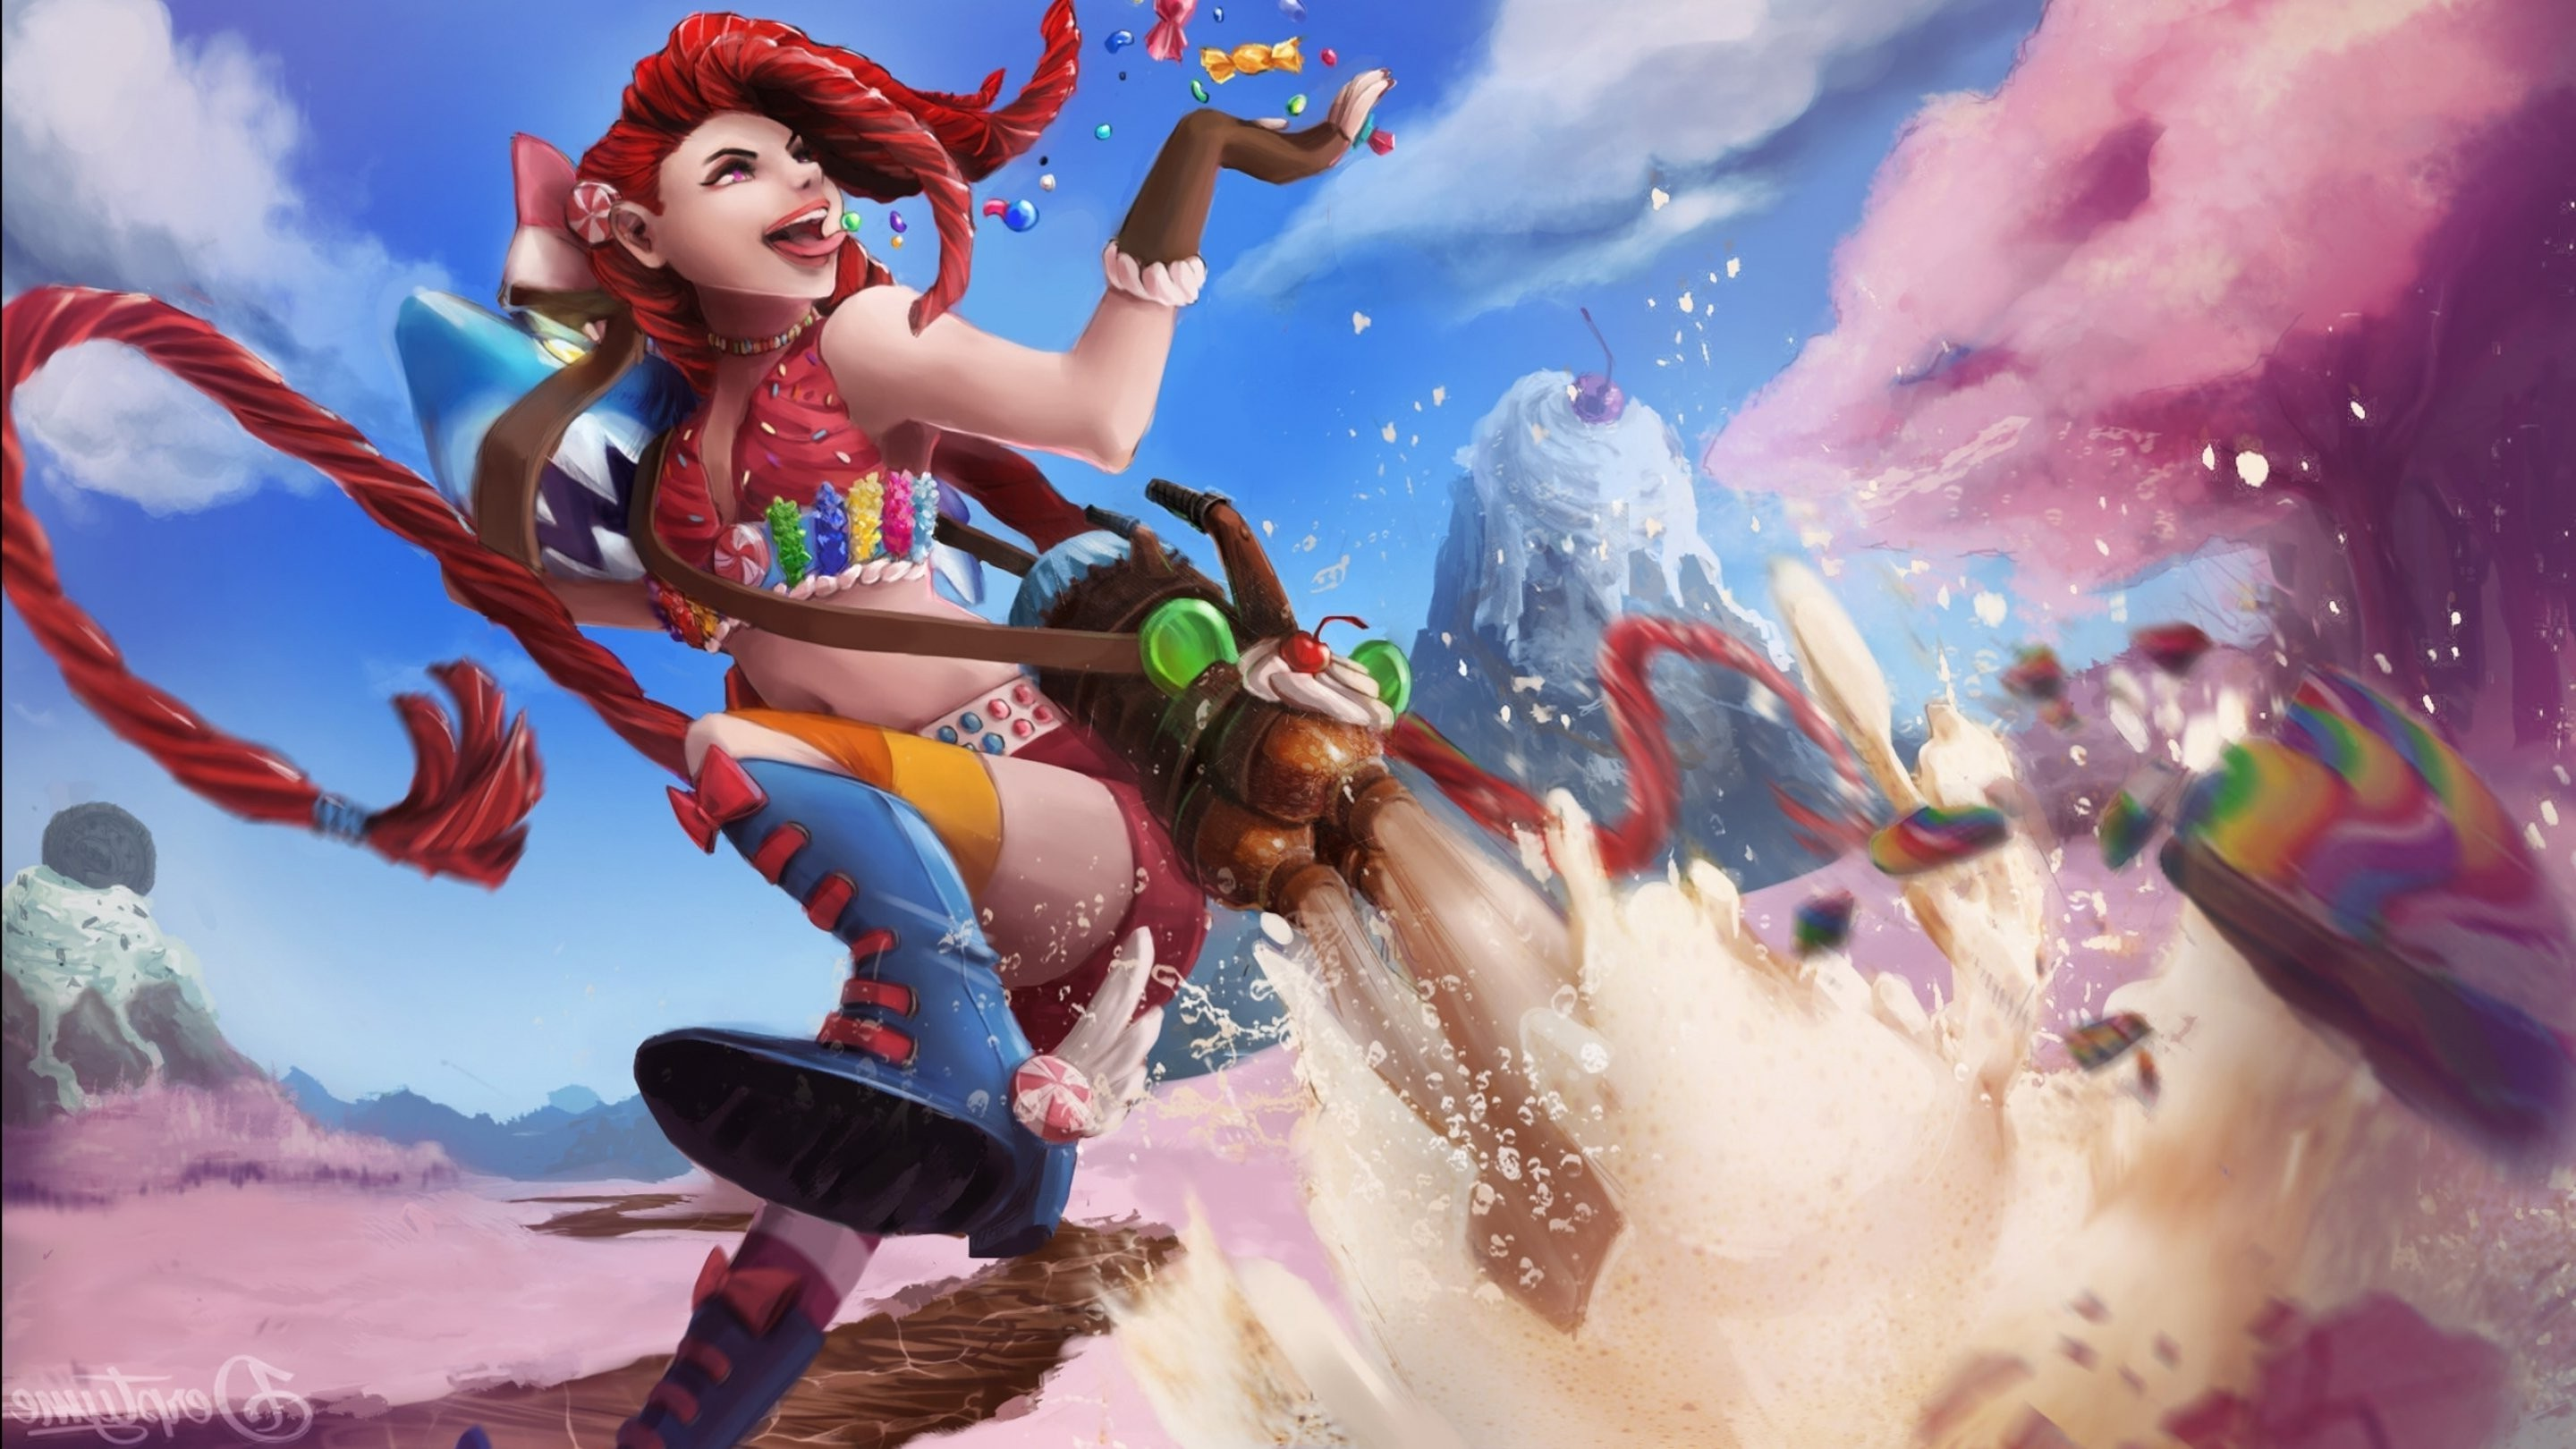 1920x1080 ... poolparty_wallpaper Cool League Of Legends Wallpapers wallpaper league legends draven wallpapers cool background desktop images .